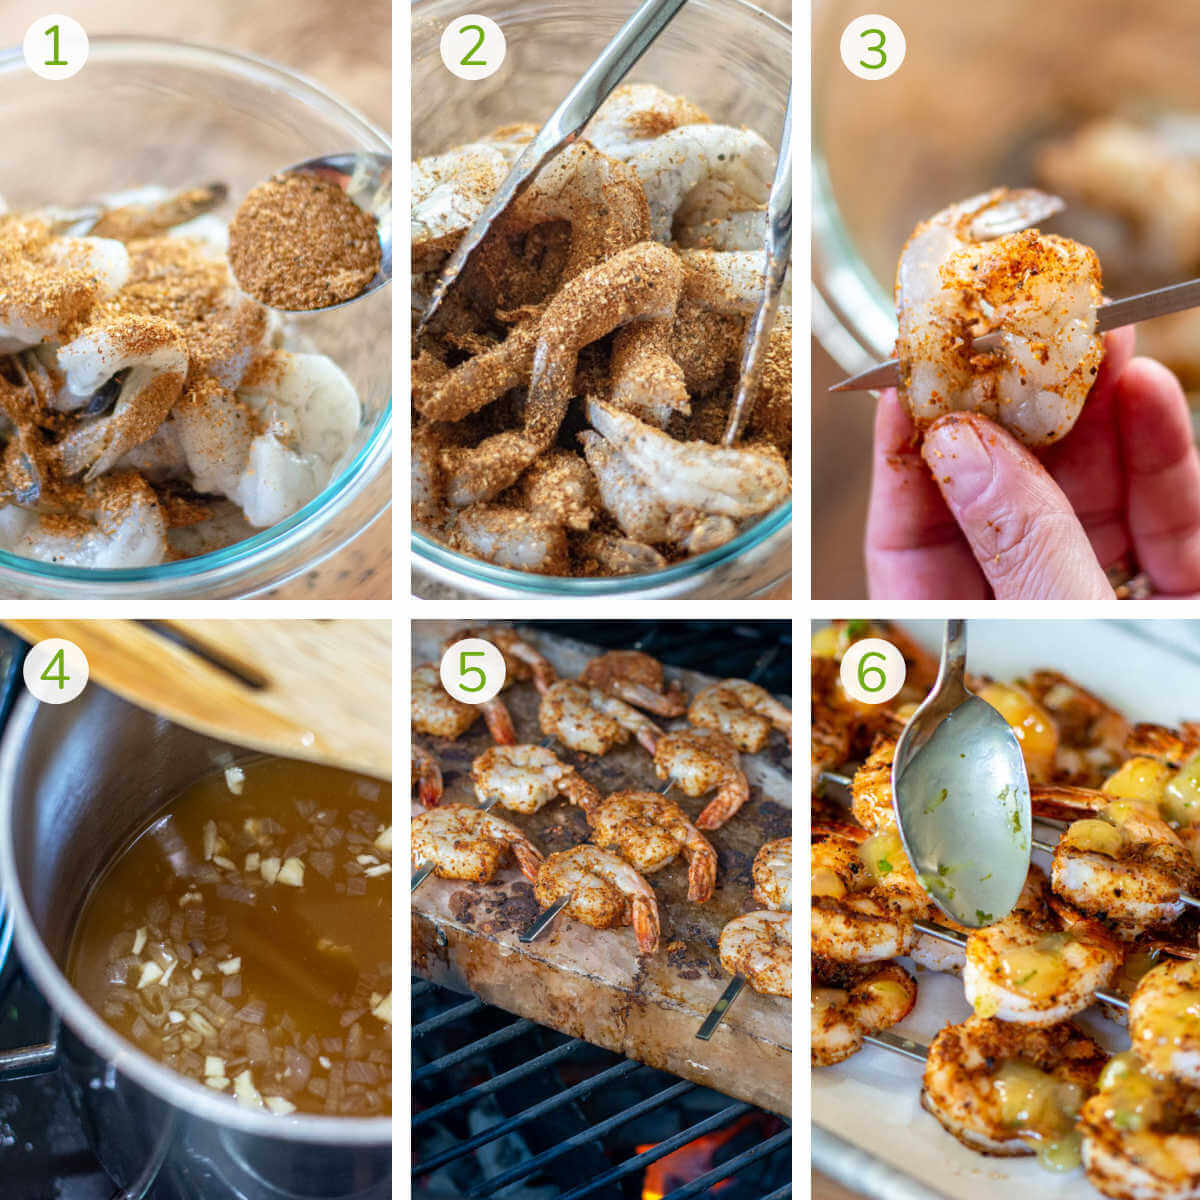 step by step photos showing seasoning and skewering the shrimp, making the sauce, and grilling on a Himalayan Salt Block.